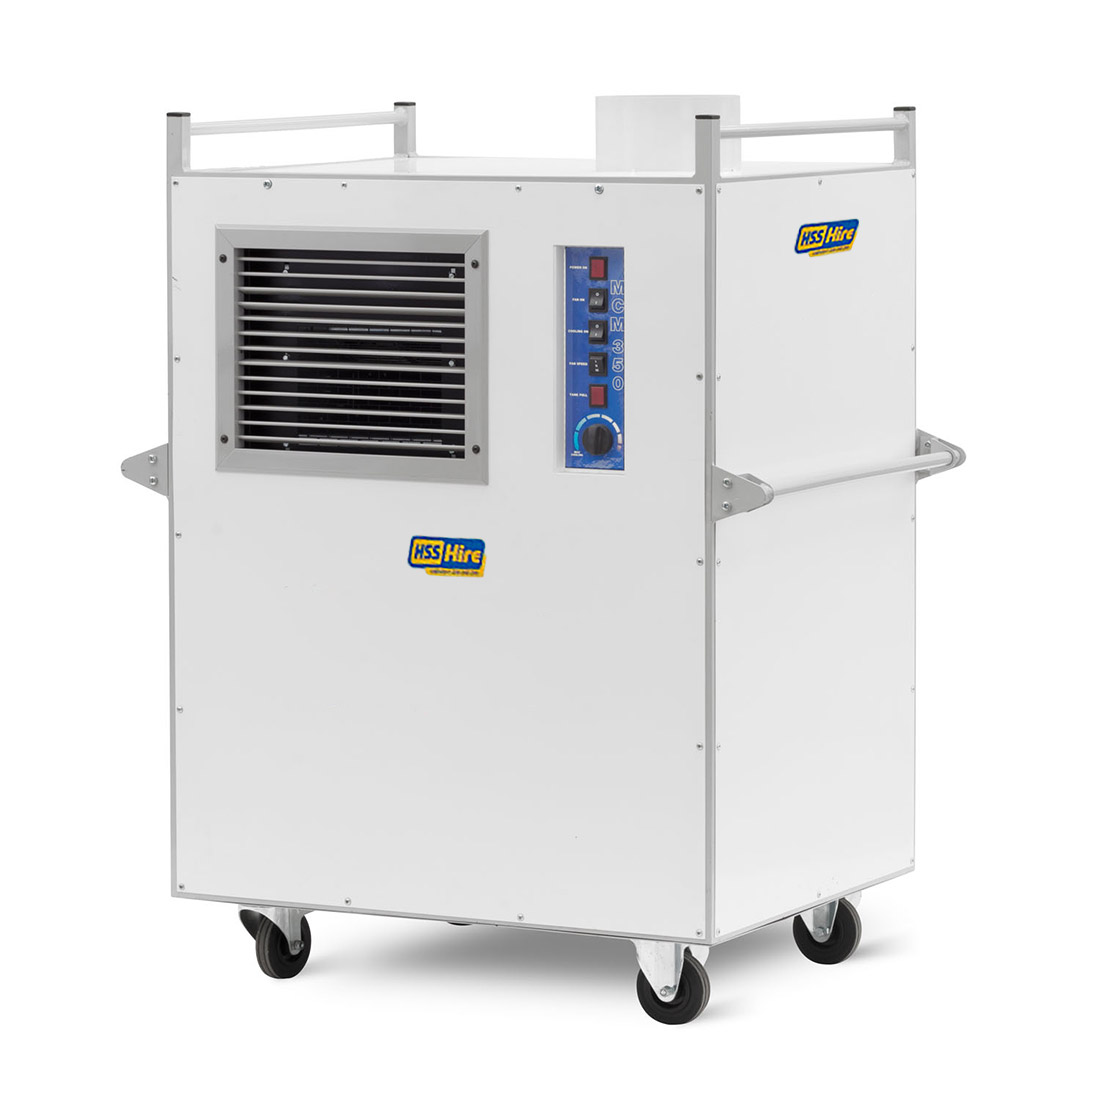 Heavy Duty Air Conditioner (7.9kW)